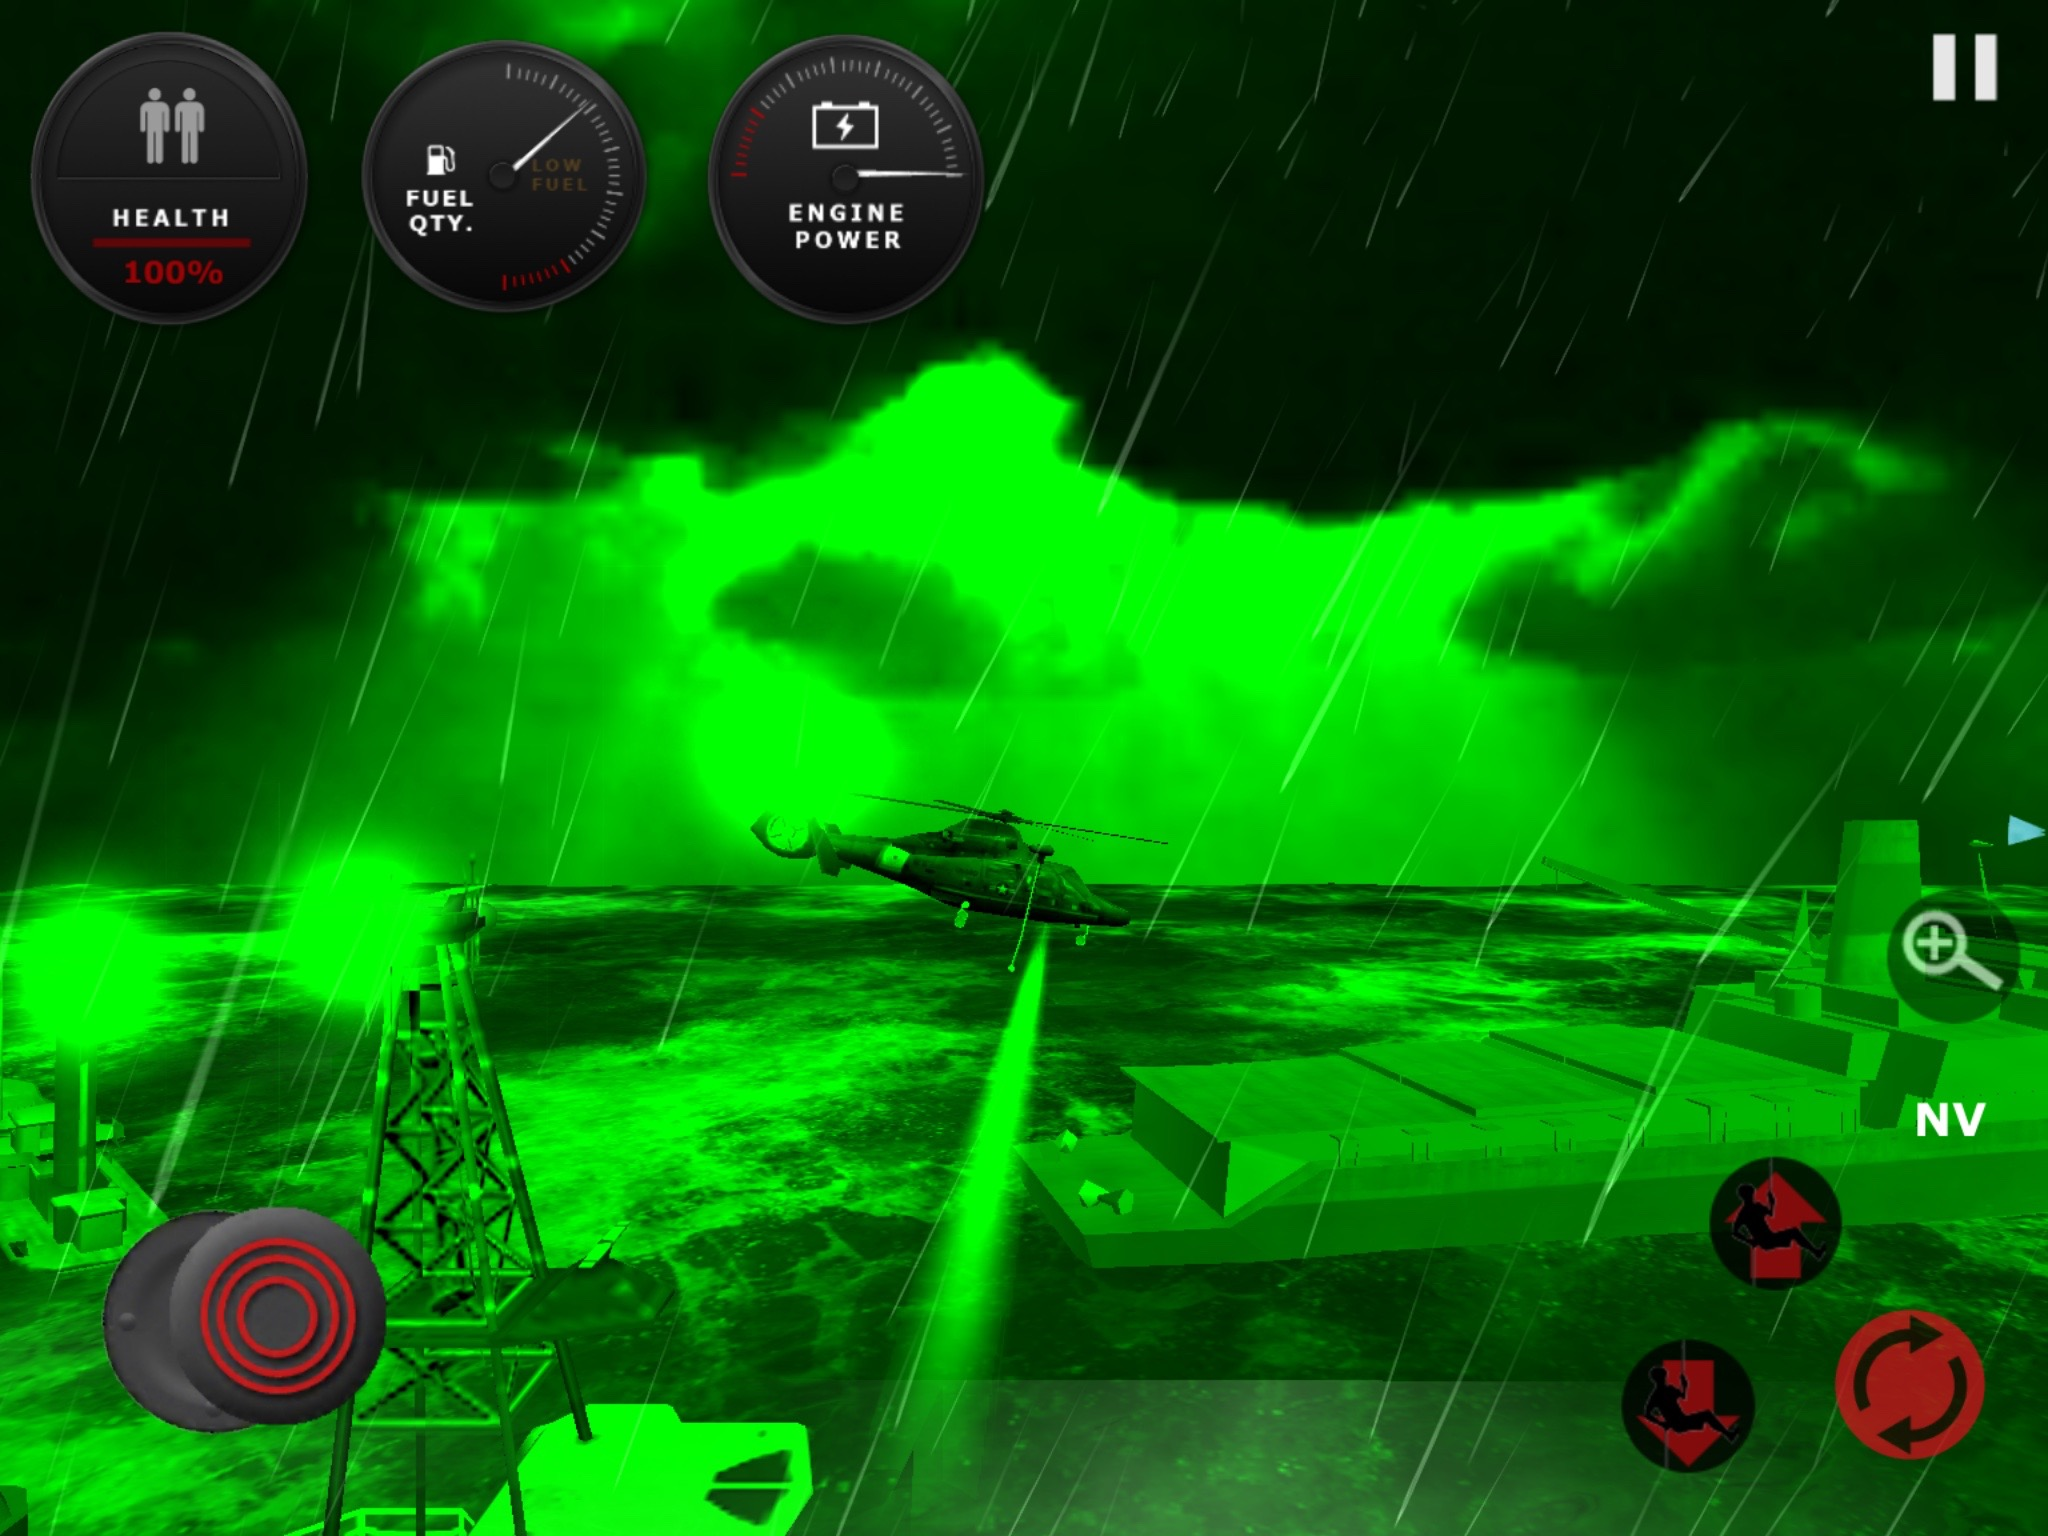 Helicopter Rescue night vision mode